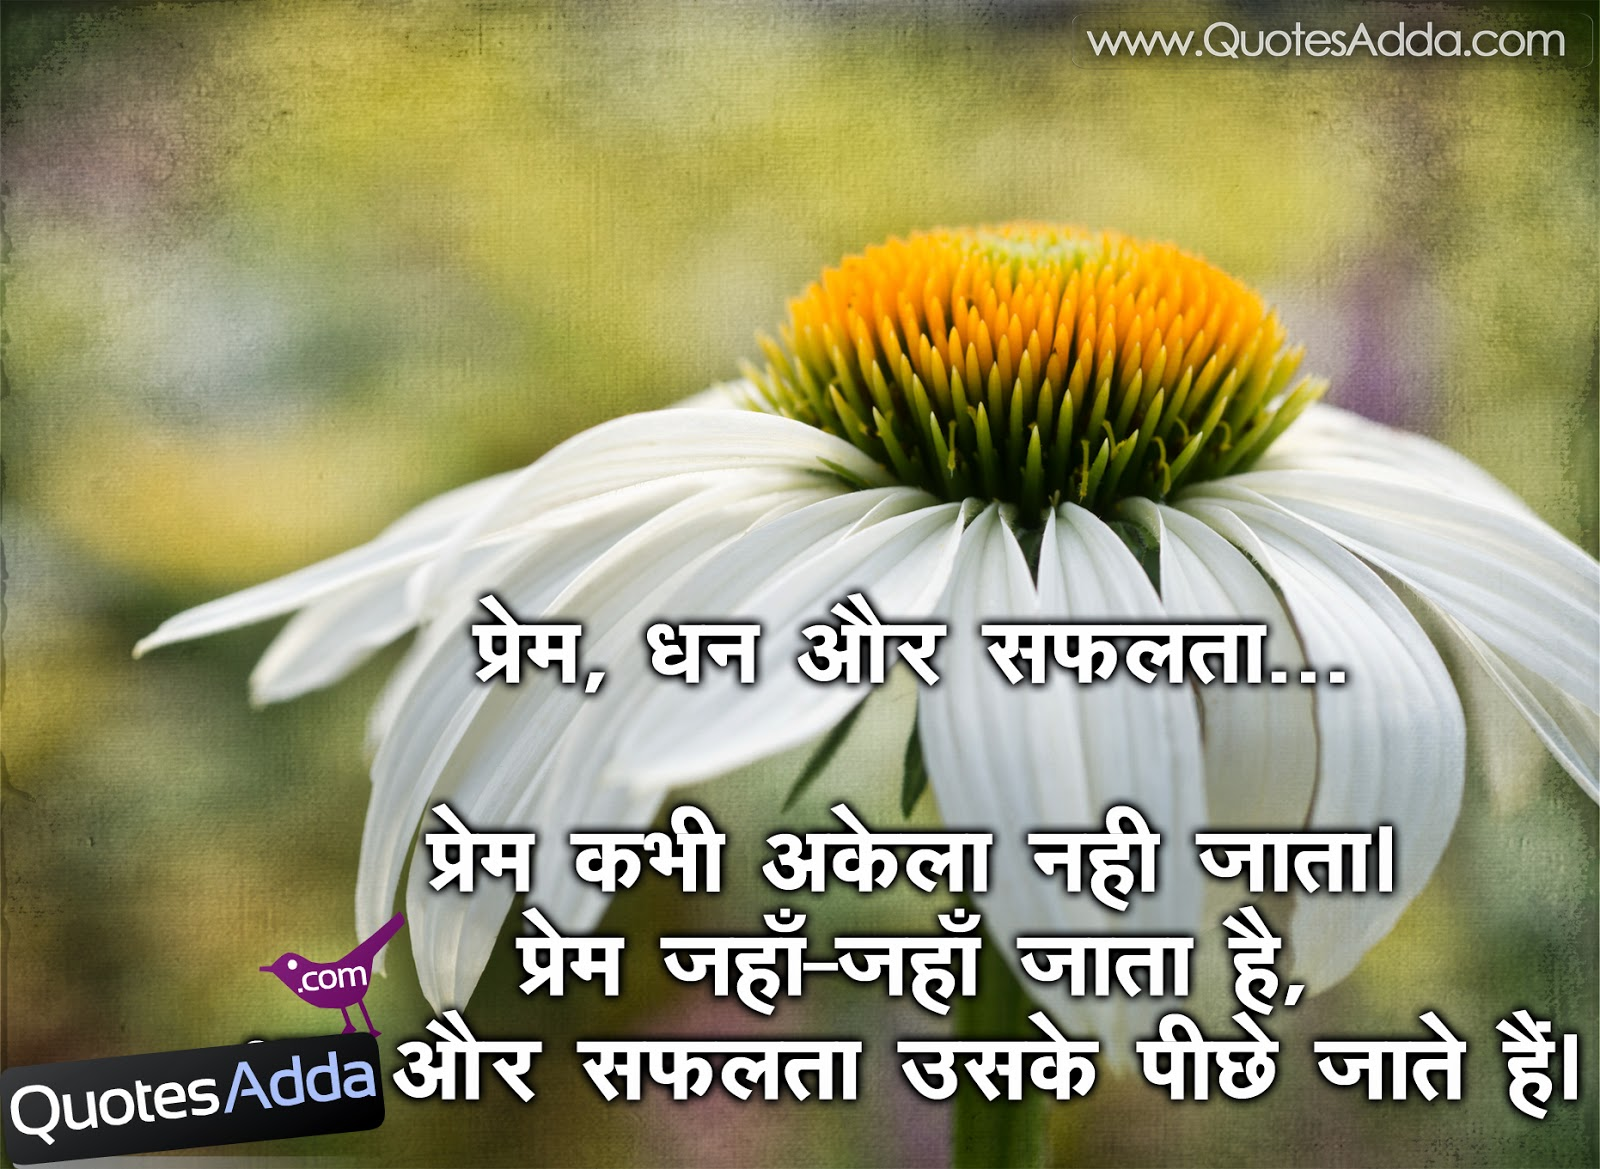 Hindi Nice Quotes On Life And Love : ... QuotesAdda.com Telugu Quotes Tamil Quotes Hindi Quotes English